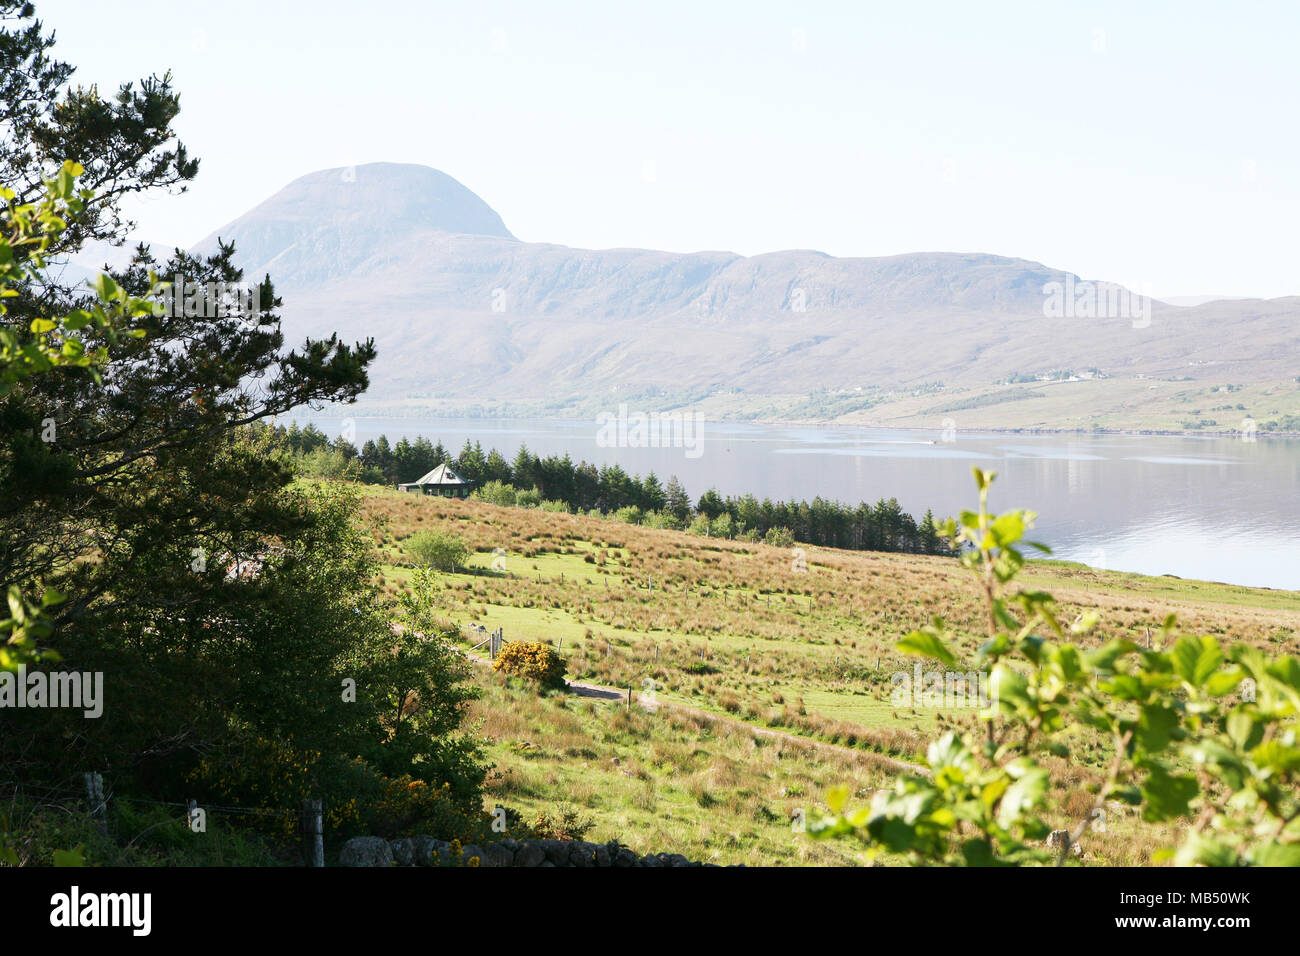 Landscape on ocean fjord and mountains, Ullapool, Scotland - Stock Image